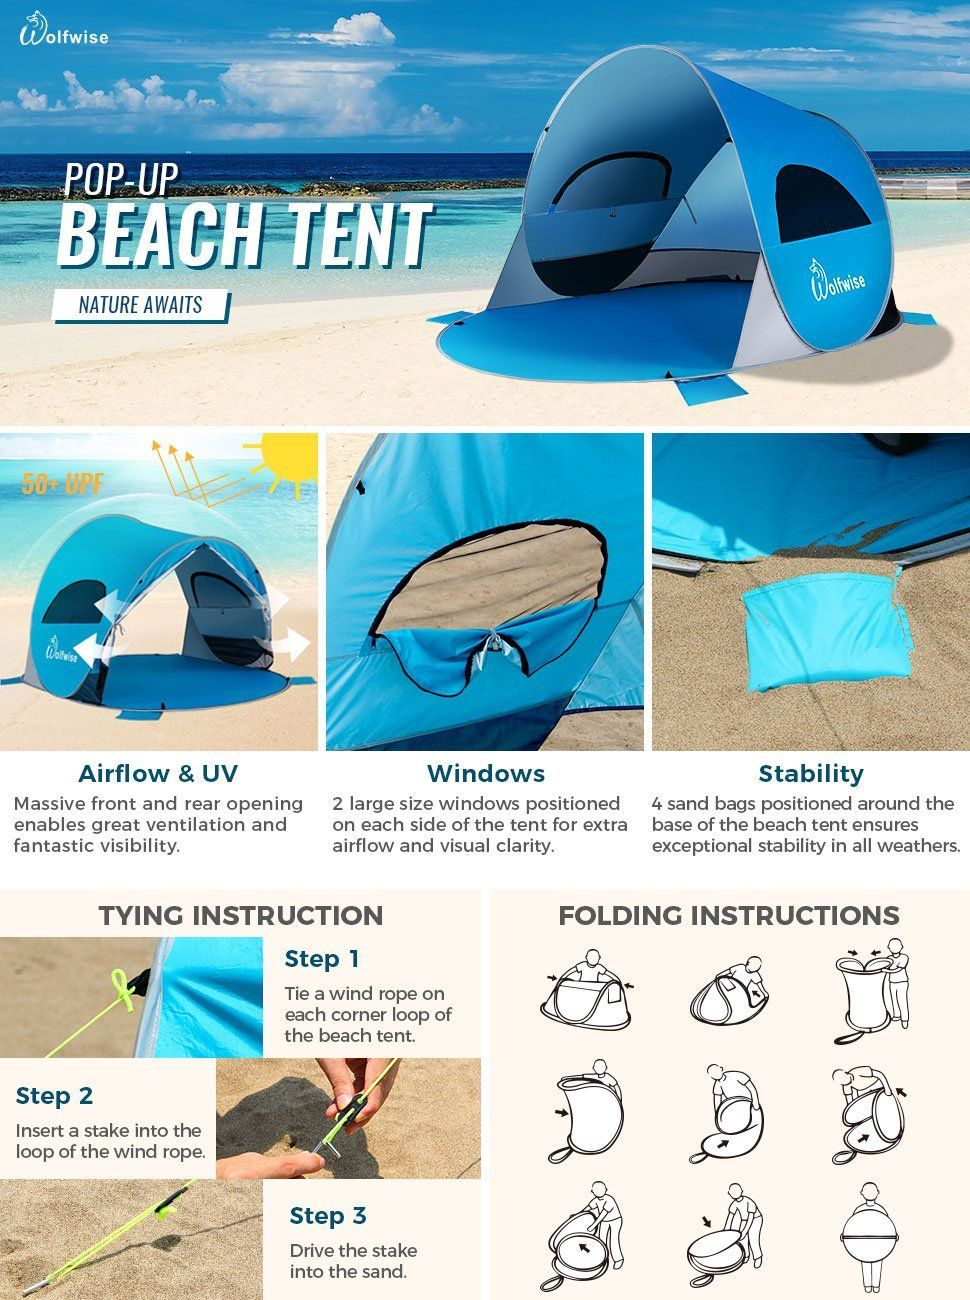 Amazon Com Wolfwise Upf 50 Easy Pop Up Beach Tent Instant Sun Shelter Tent Sunshade Baby Canopy Sports Outdoors Beach Tent Baby Canopy Pop Up Beach Tent